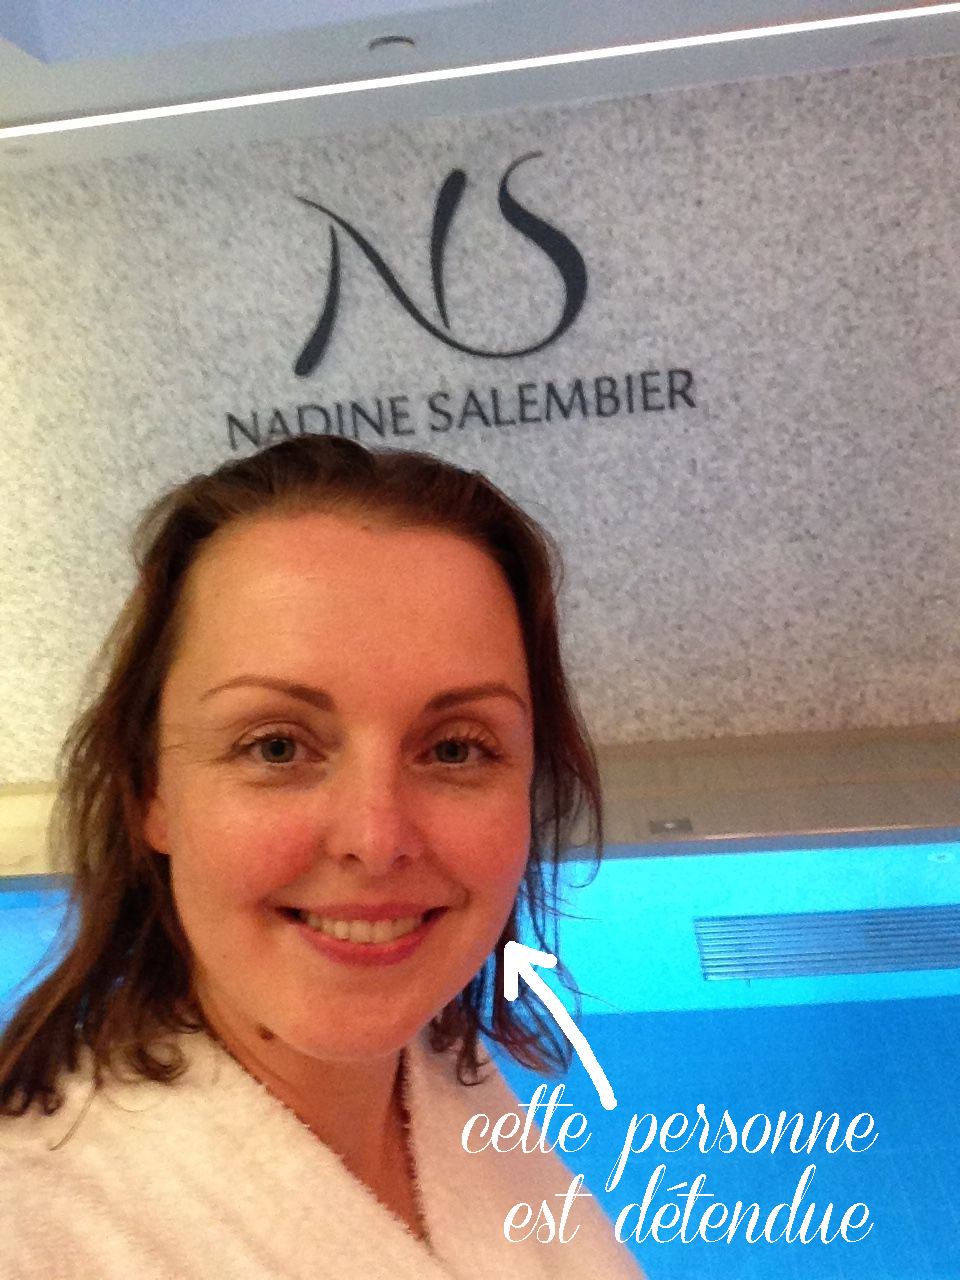 spa-nadine-salembier